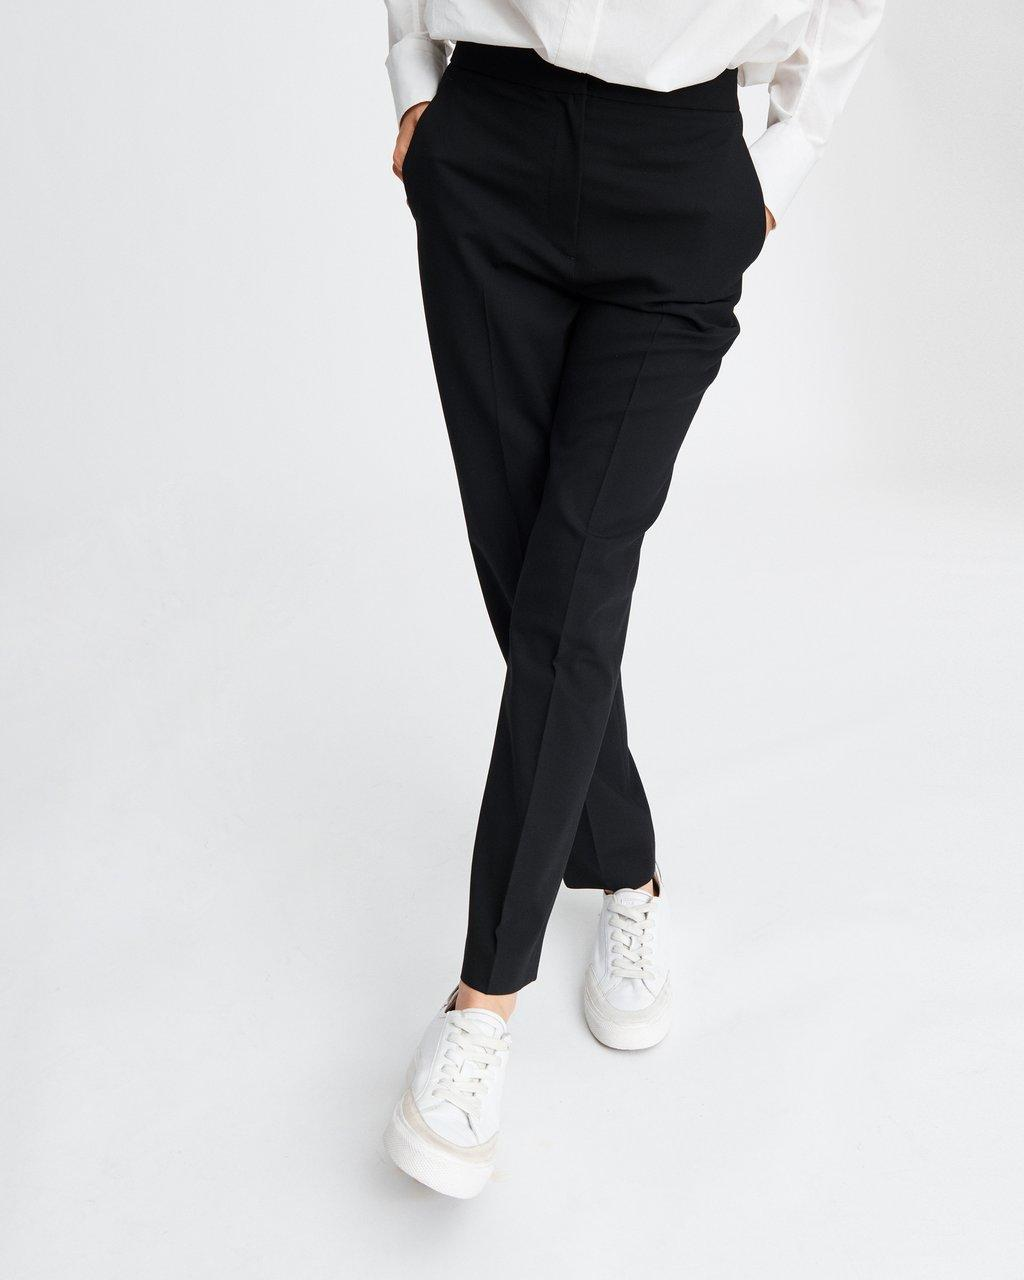 POPPY HIGH WAISTED SOLID PANT